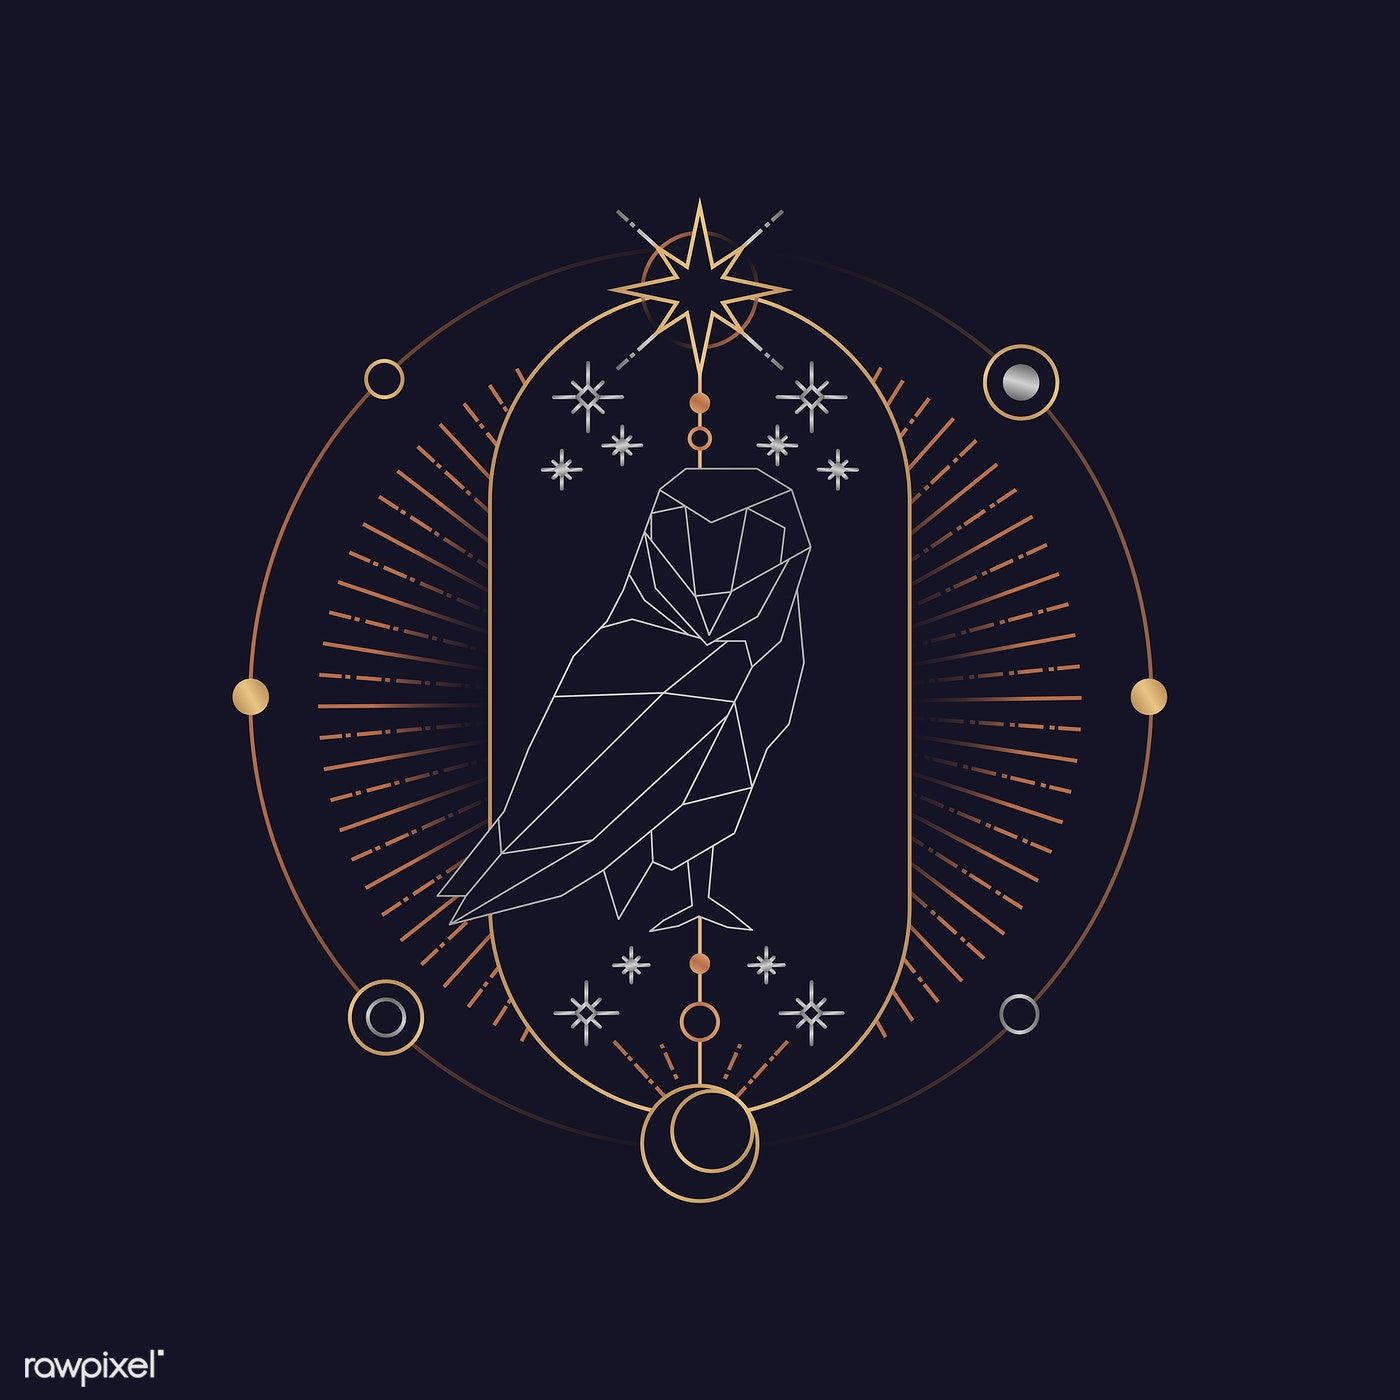 Download premium vector of Geometric owl mystic symbol